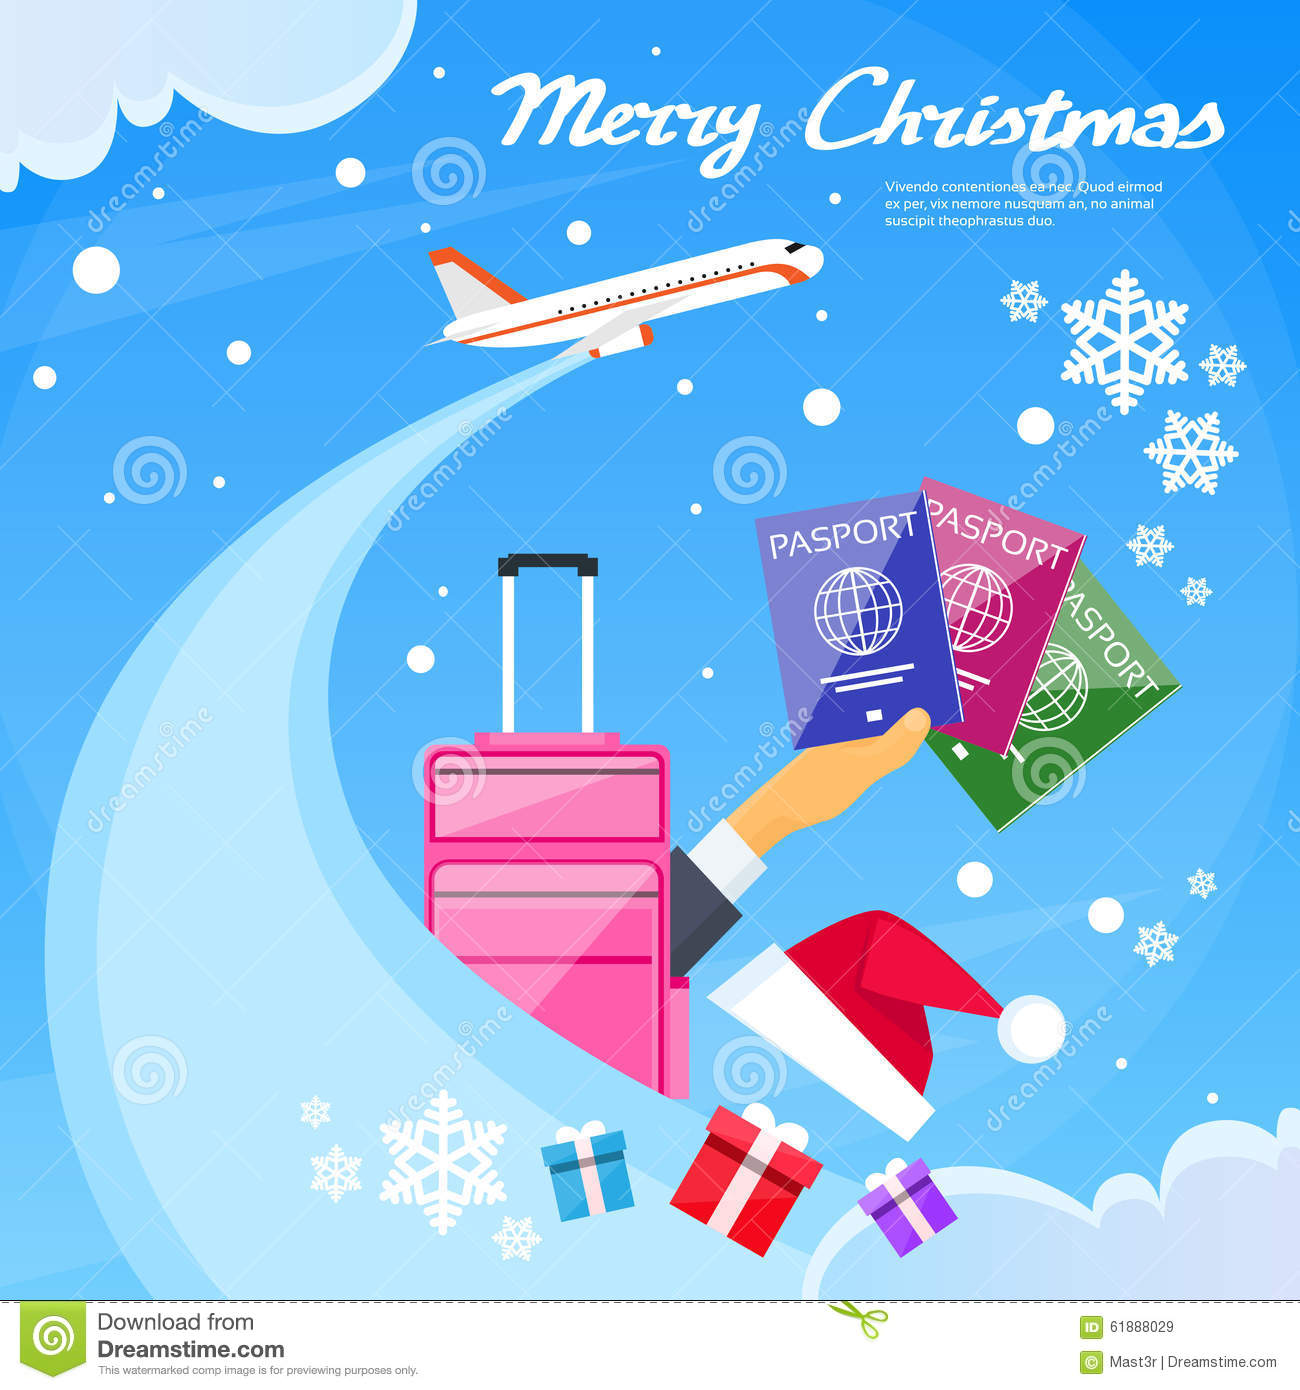 Easy Year To Travel On Christmas: Passport Icon Hand Hold Travel Document New Year Stock